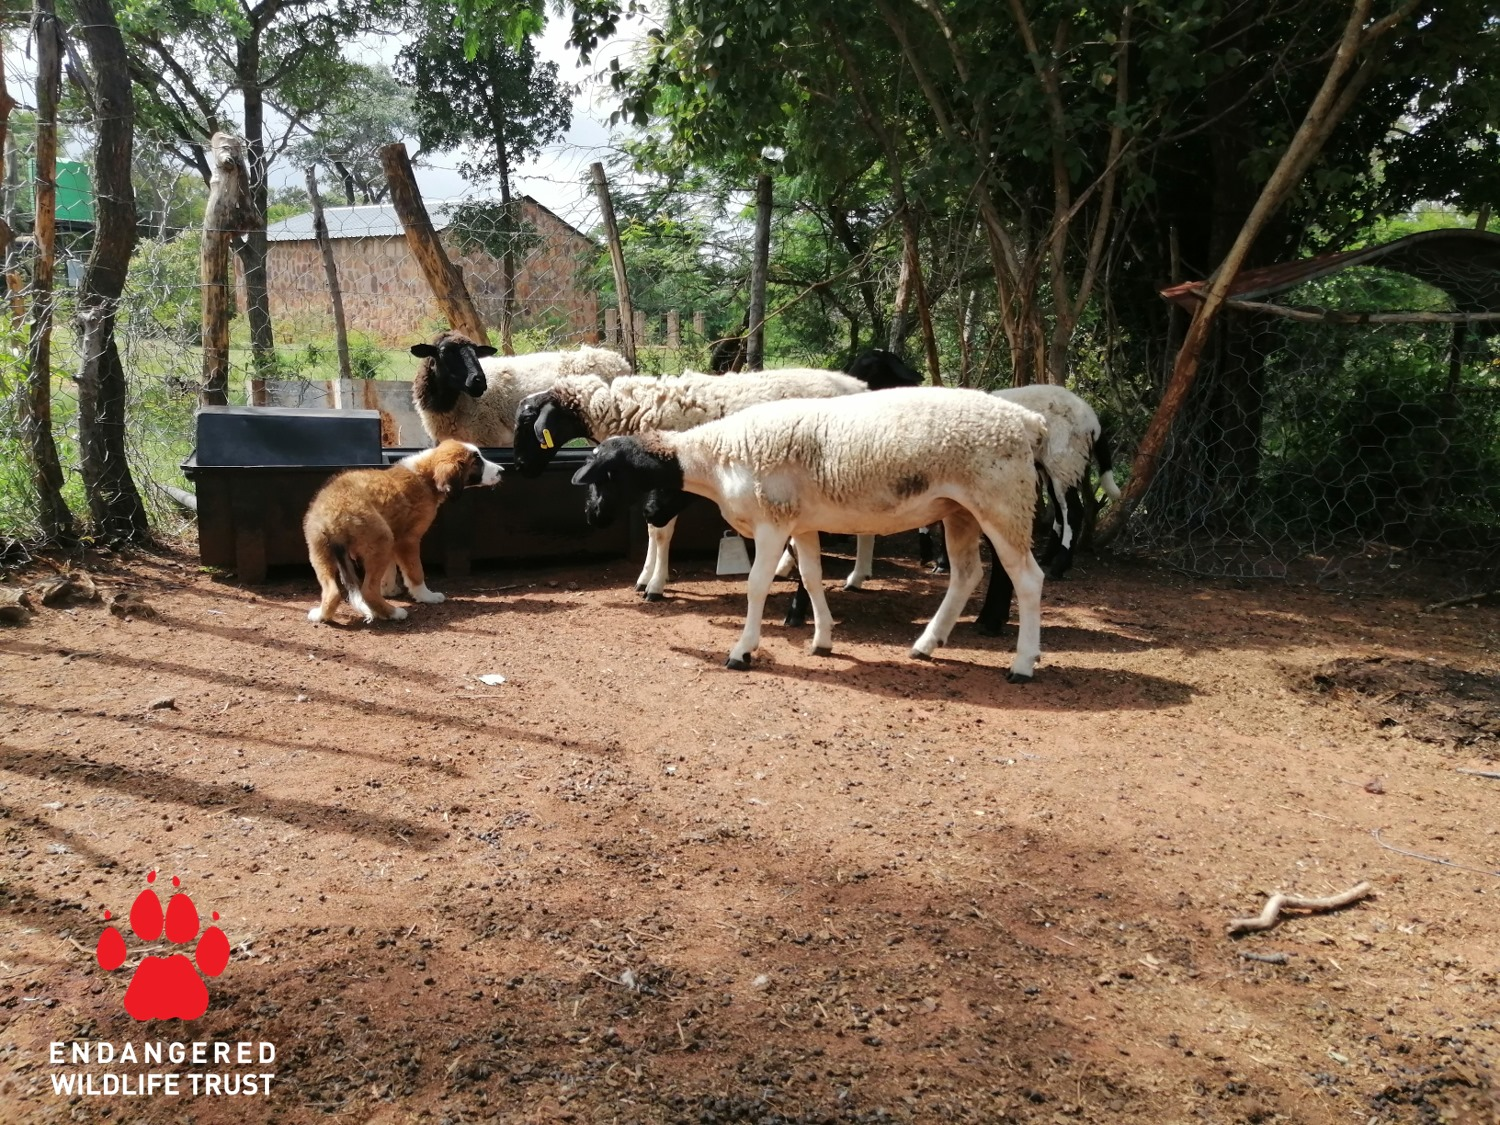 Exposing young puppies, selected to be livestock guardian dogs, to herds of livestock is essential for developing them into effective proctors of livestock. Photo by the Endangered Wildlife Trust.